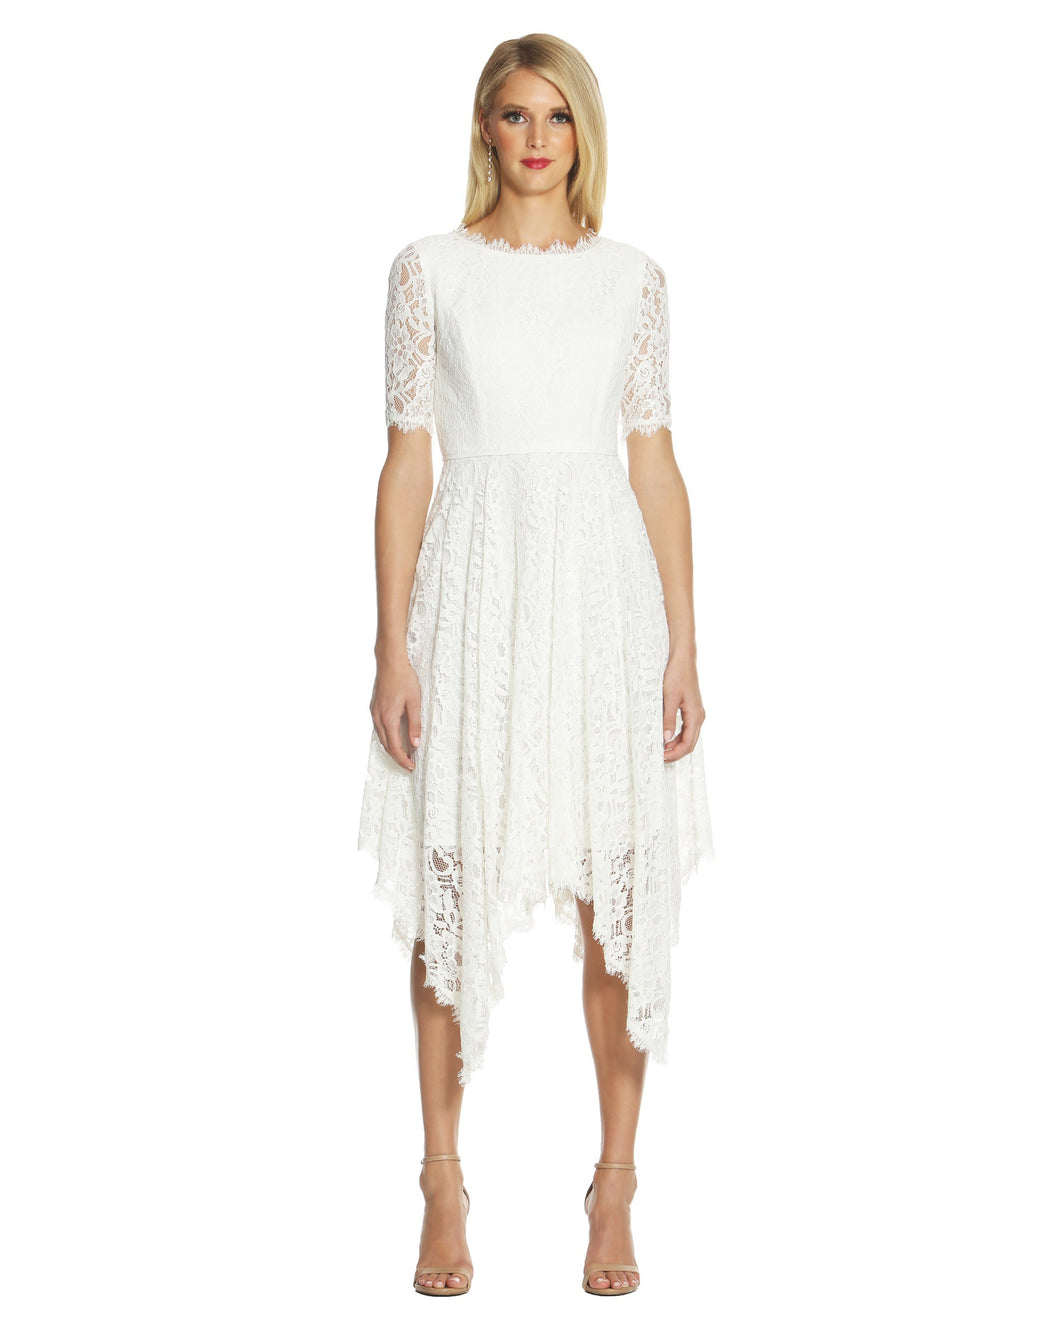 Handkerchief Lace Dress